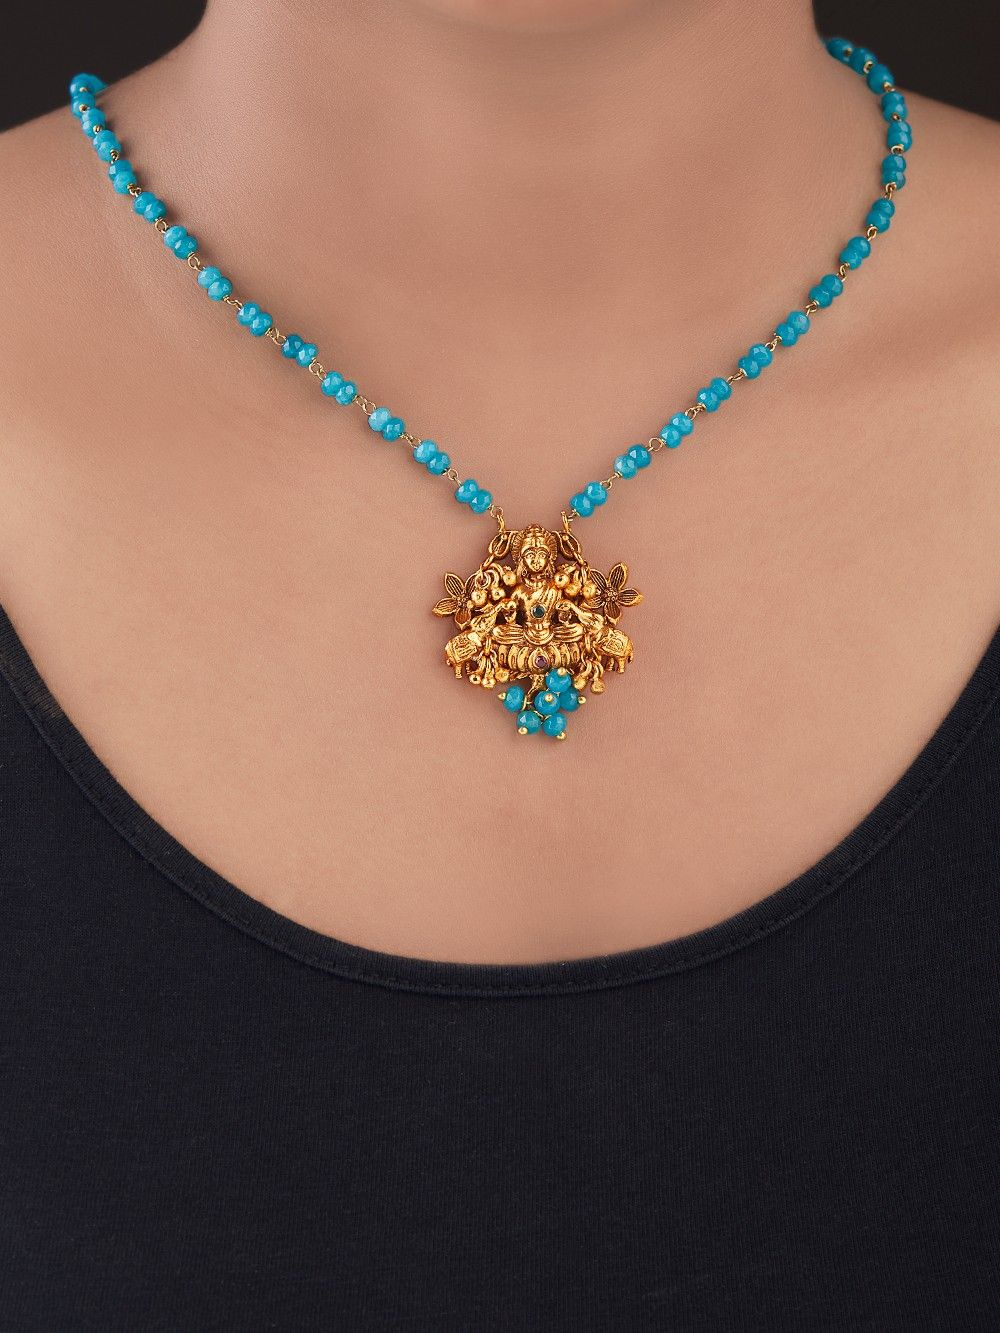 Buy Turquoise Gold Plated Silver Pendant Necklace online at Theloom ec802df31